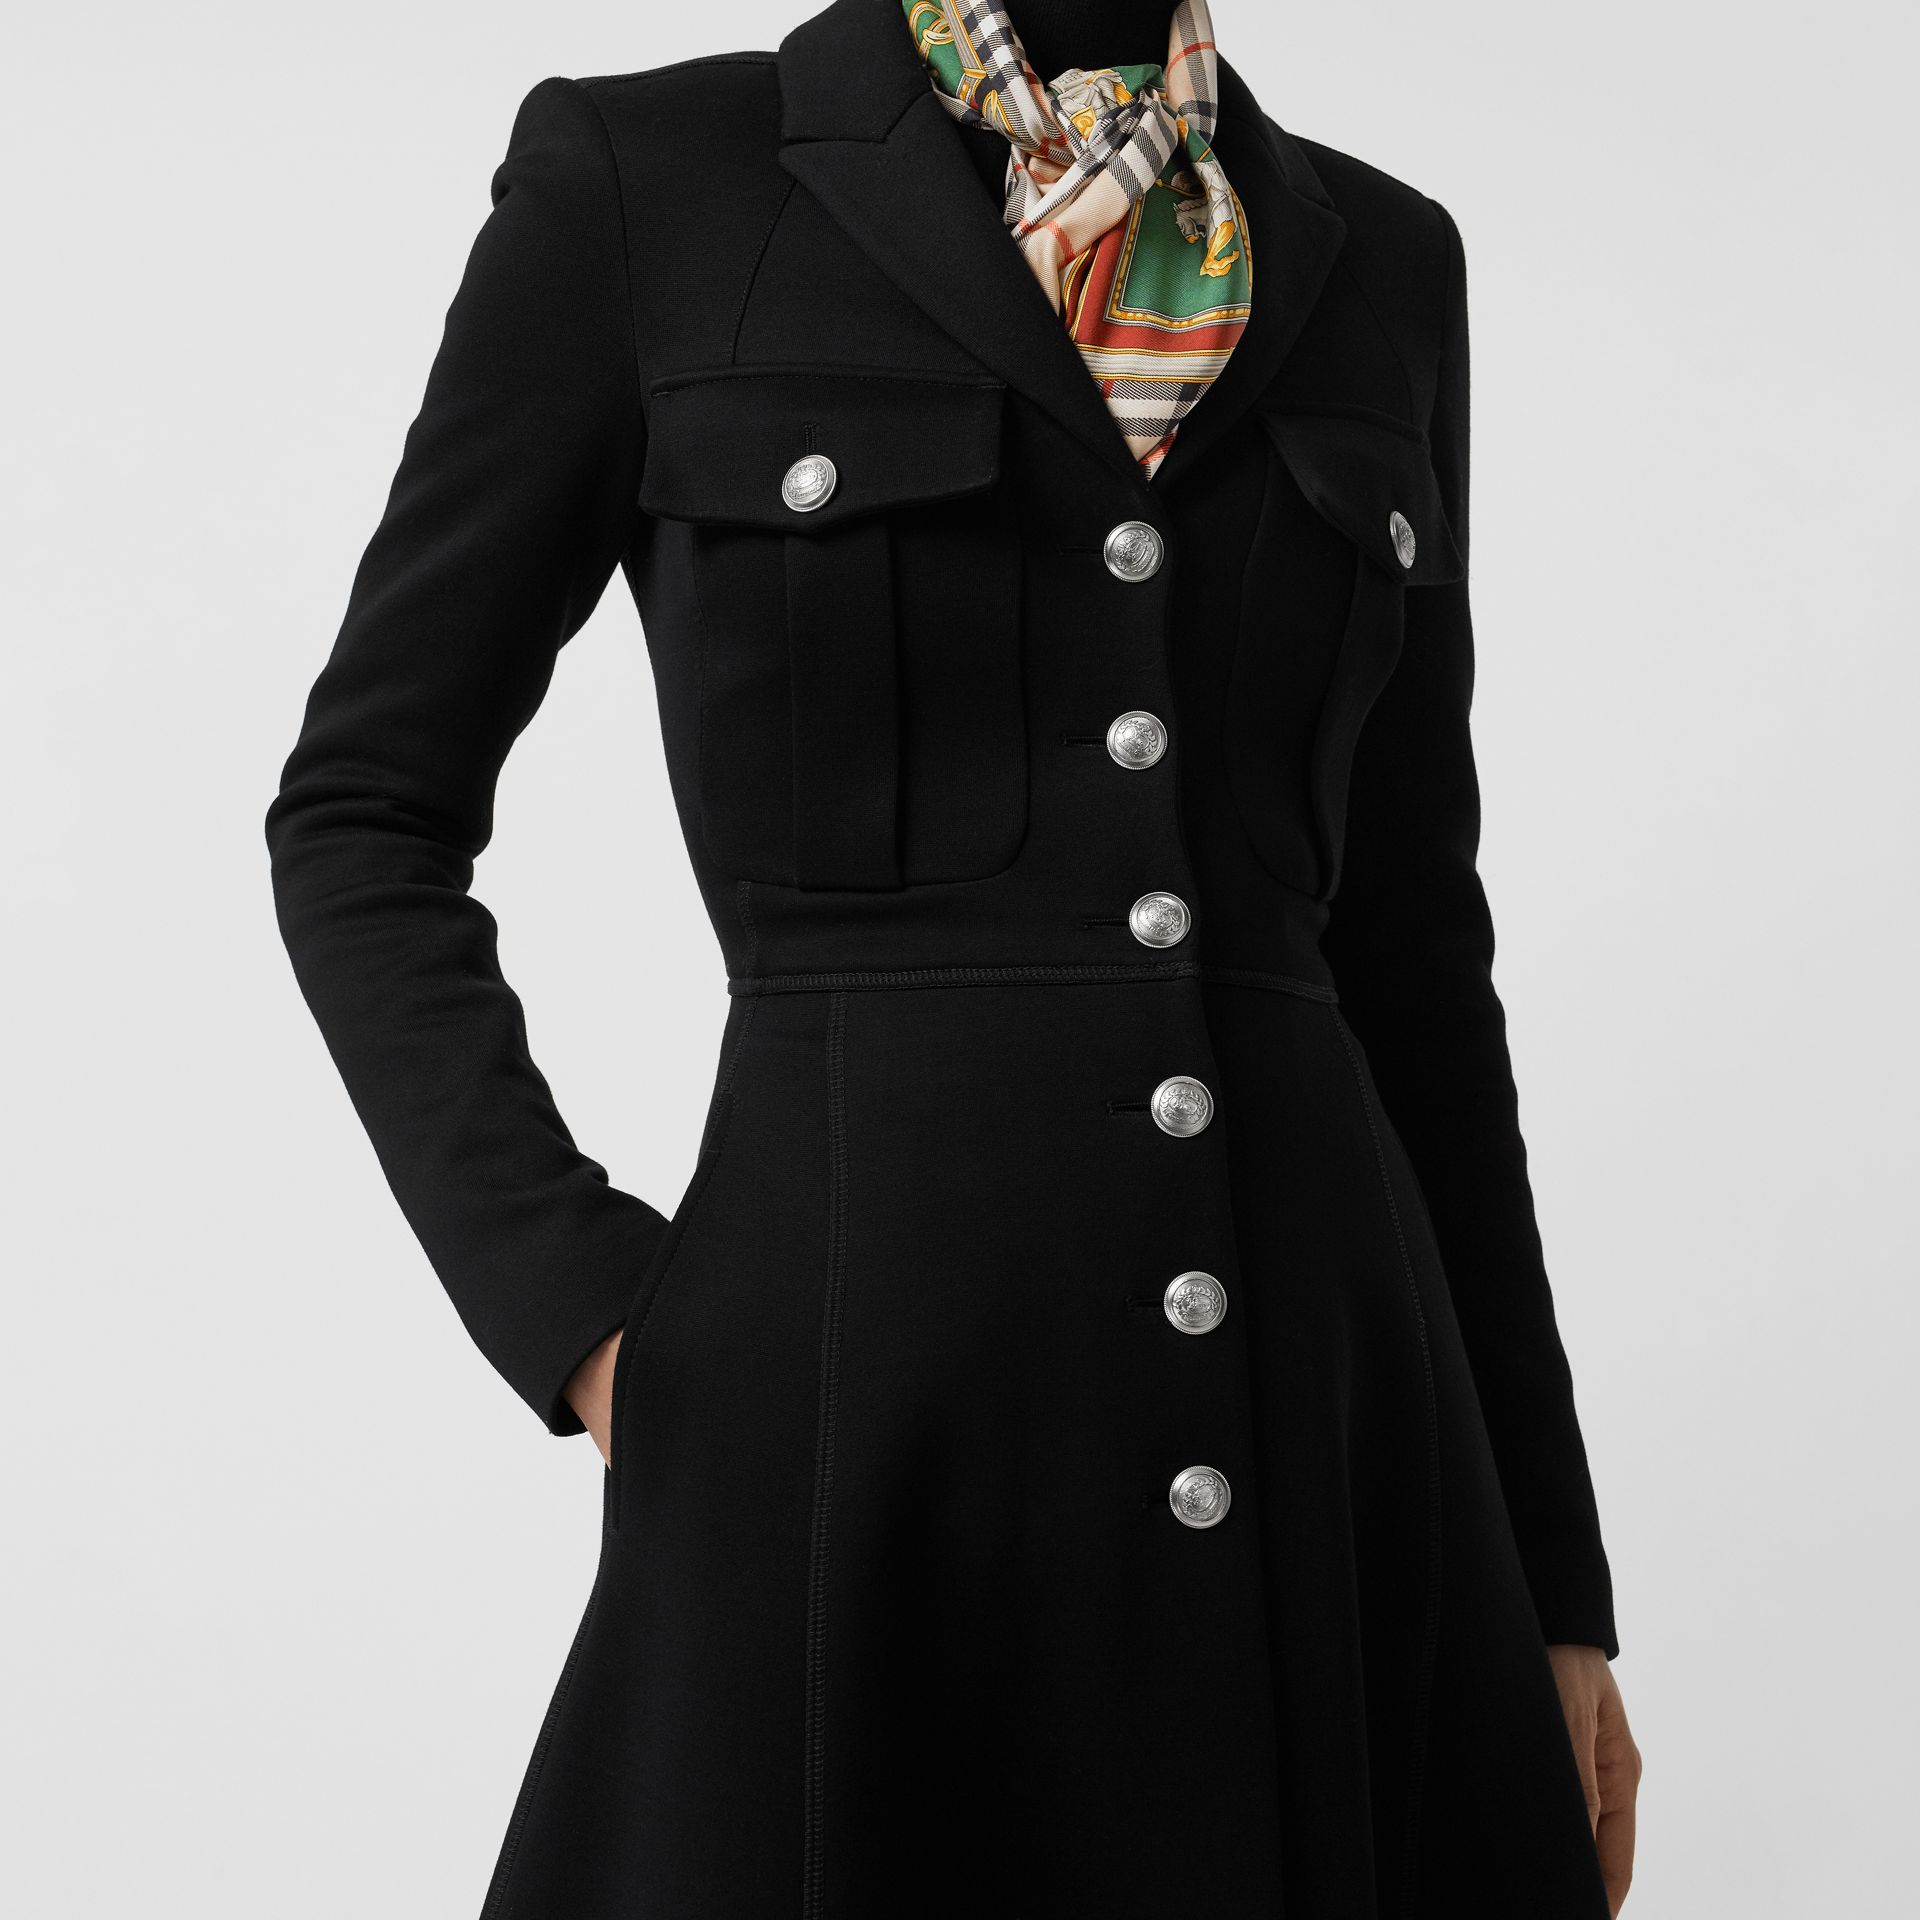 Bonded Cotton Blend Jersey Tailored Coat in Black - Women | Burberry - gallery image 1